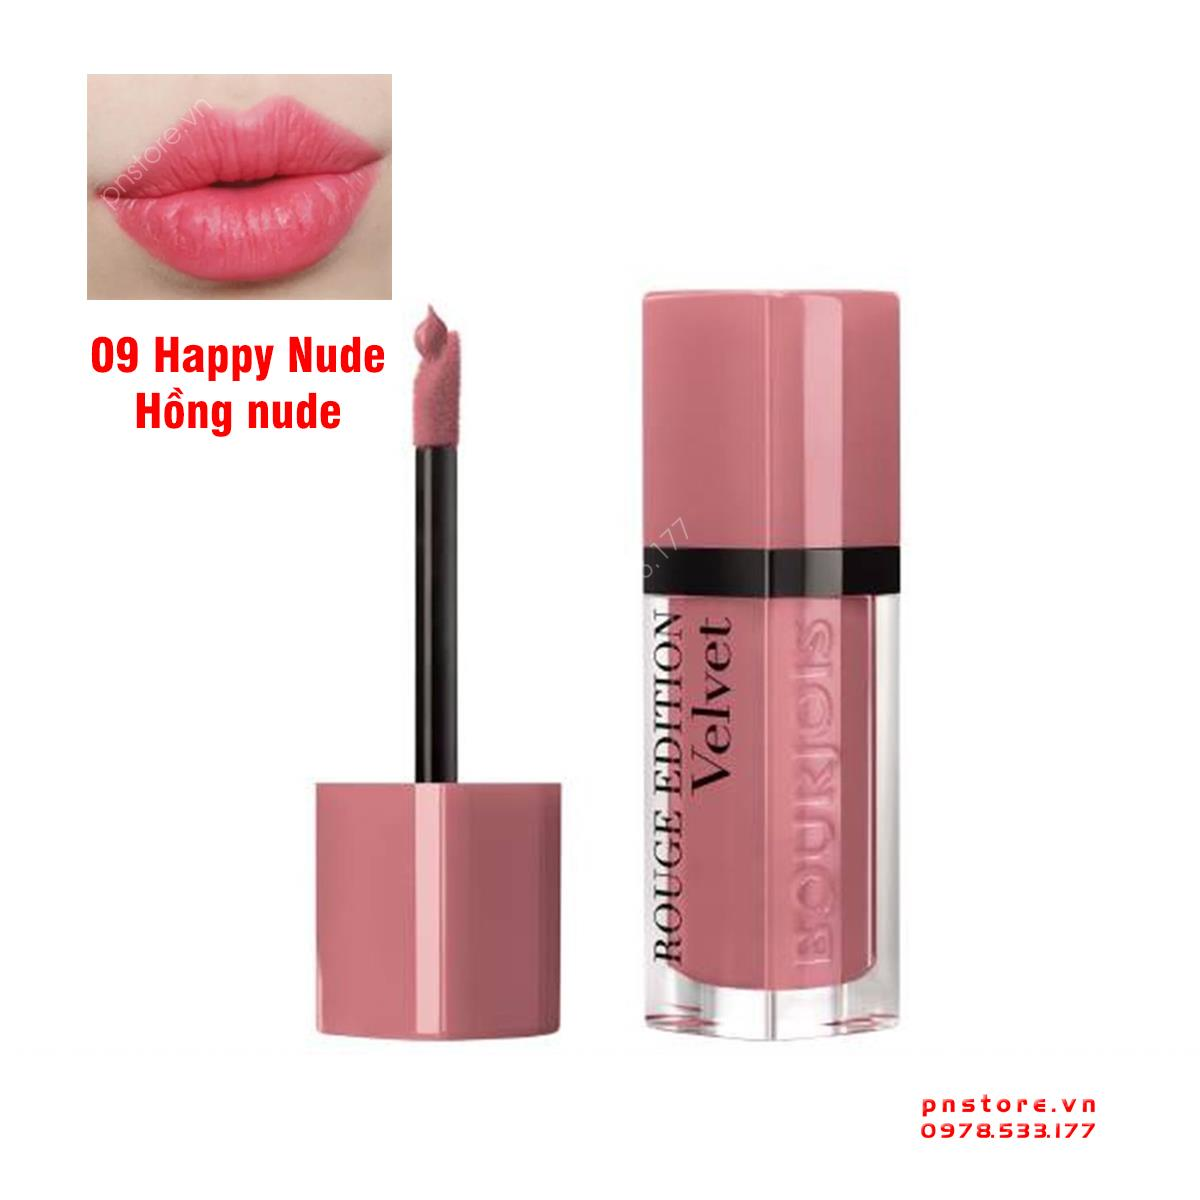 son-bourjois-velvet-09-happy-nude-mau-hong-nude-san-ho-chinh-hang-pn102026